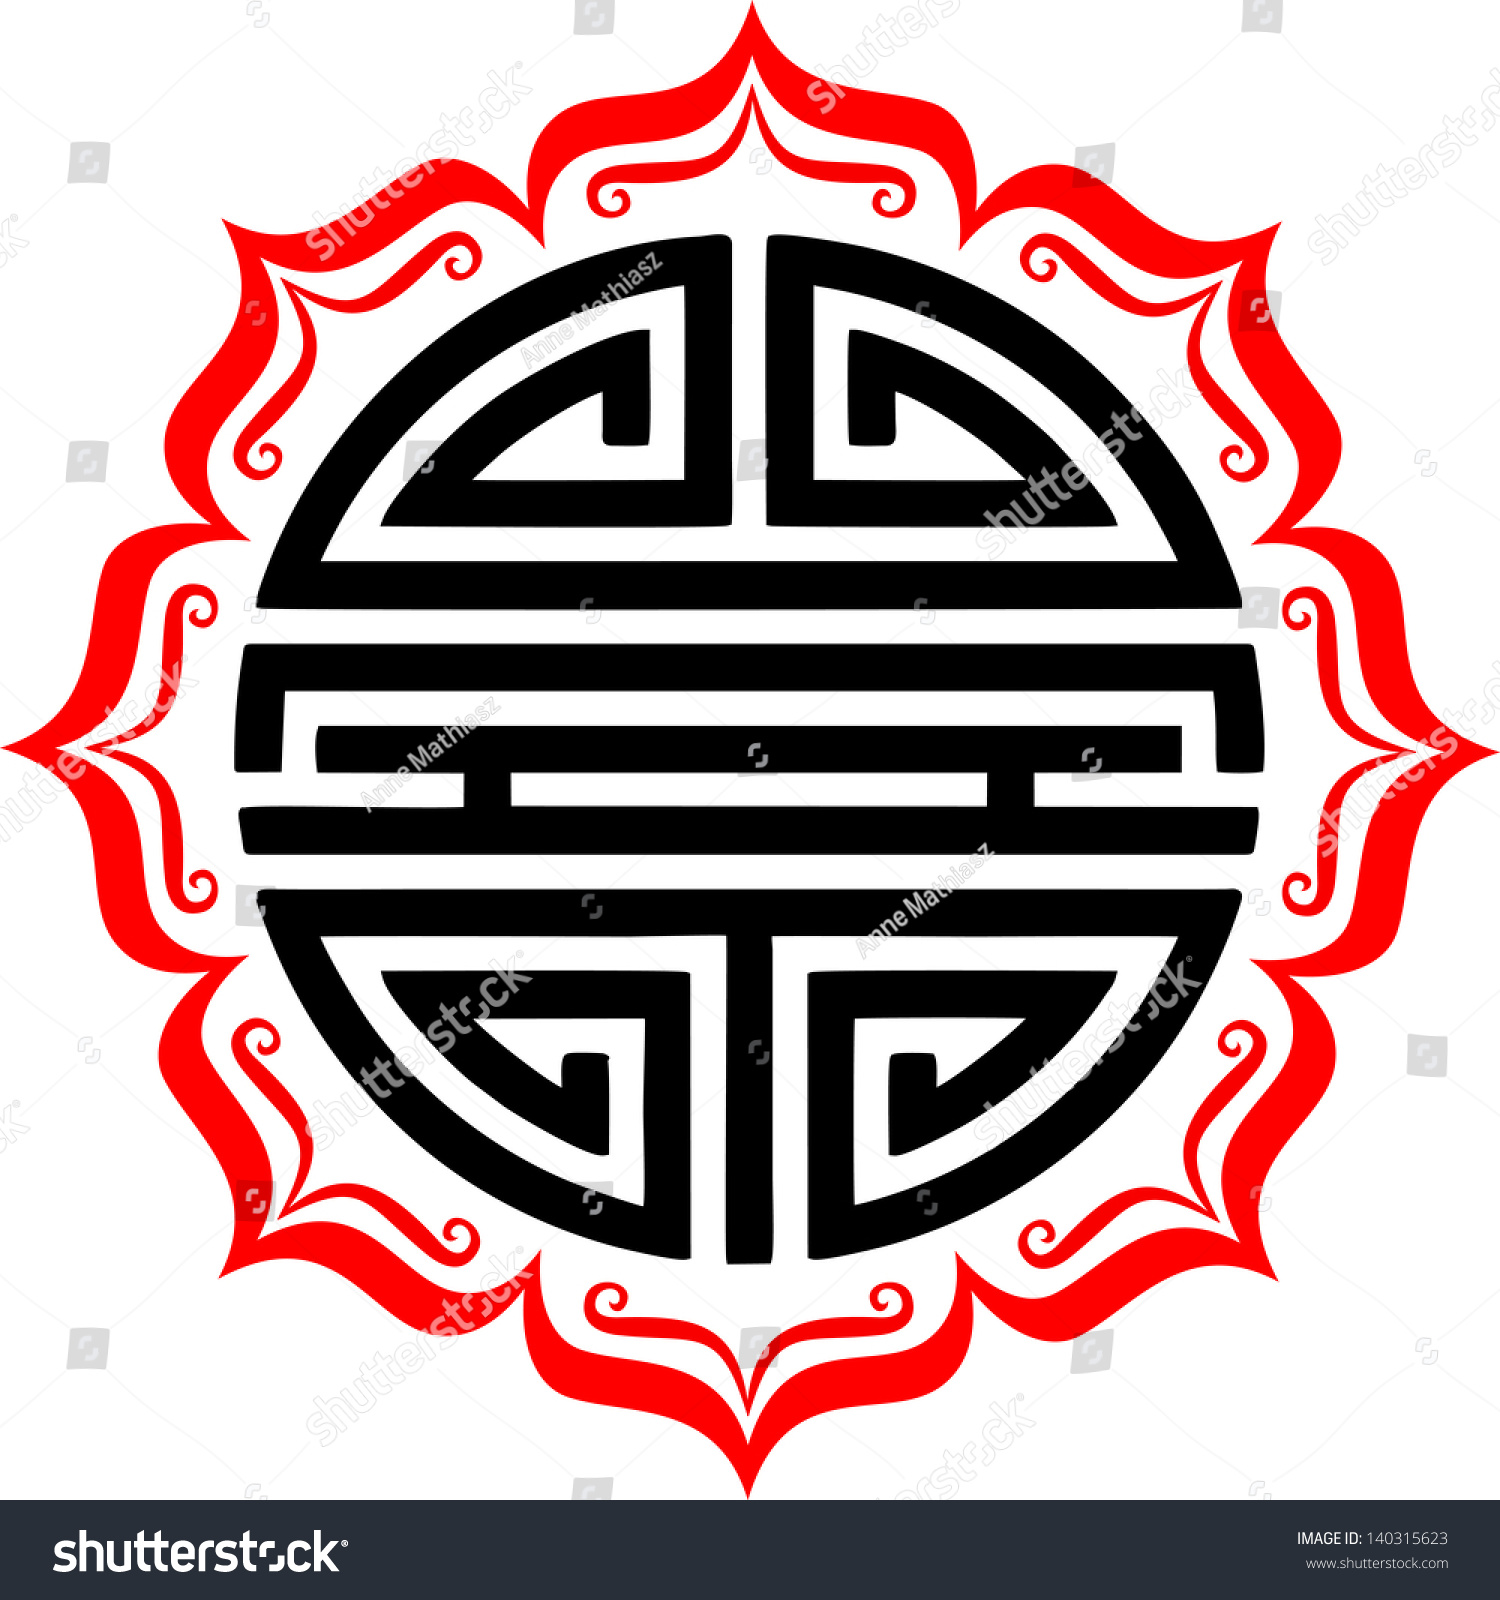 Shou symbol lotus chinese character longevity stock vector shou symbol lotus chinese character for longevity good health biocorpaavc Gallery